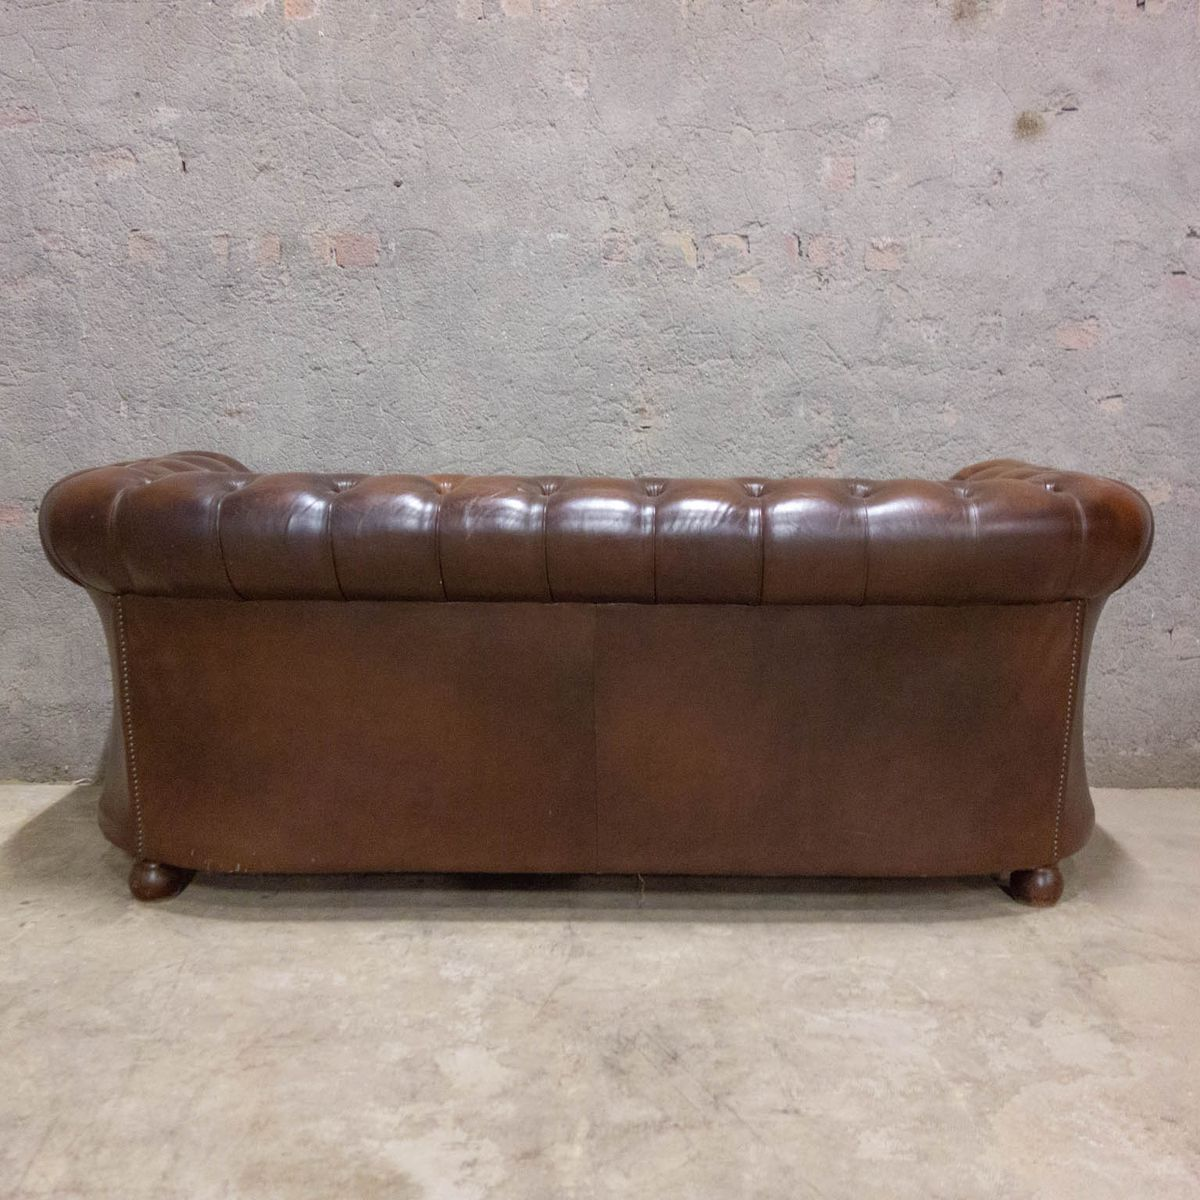 Vintage Leather Chesterfield Sofa 1970s